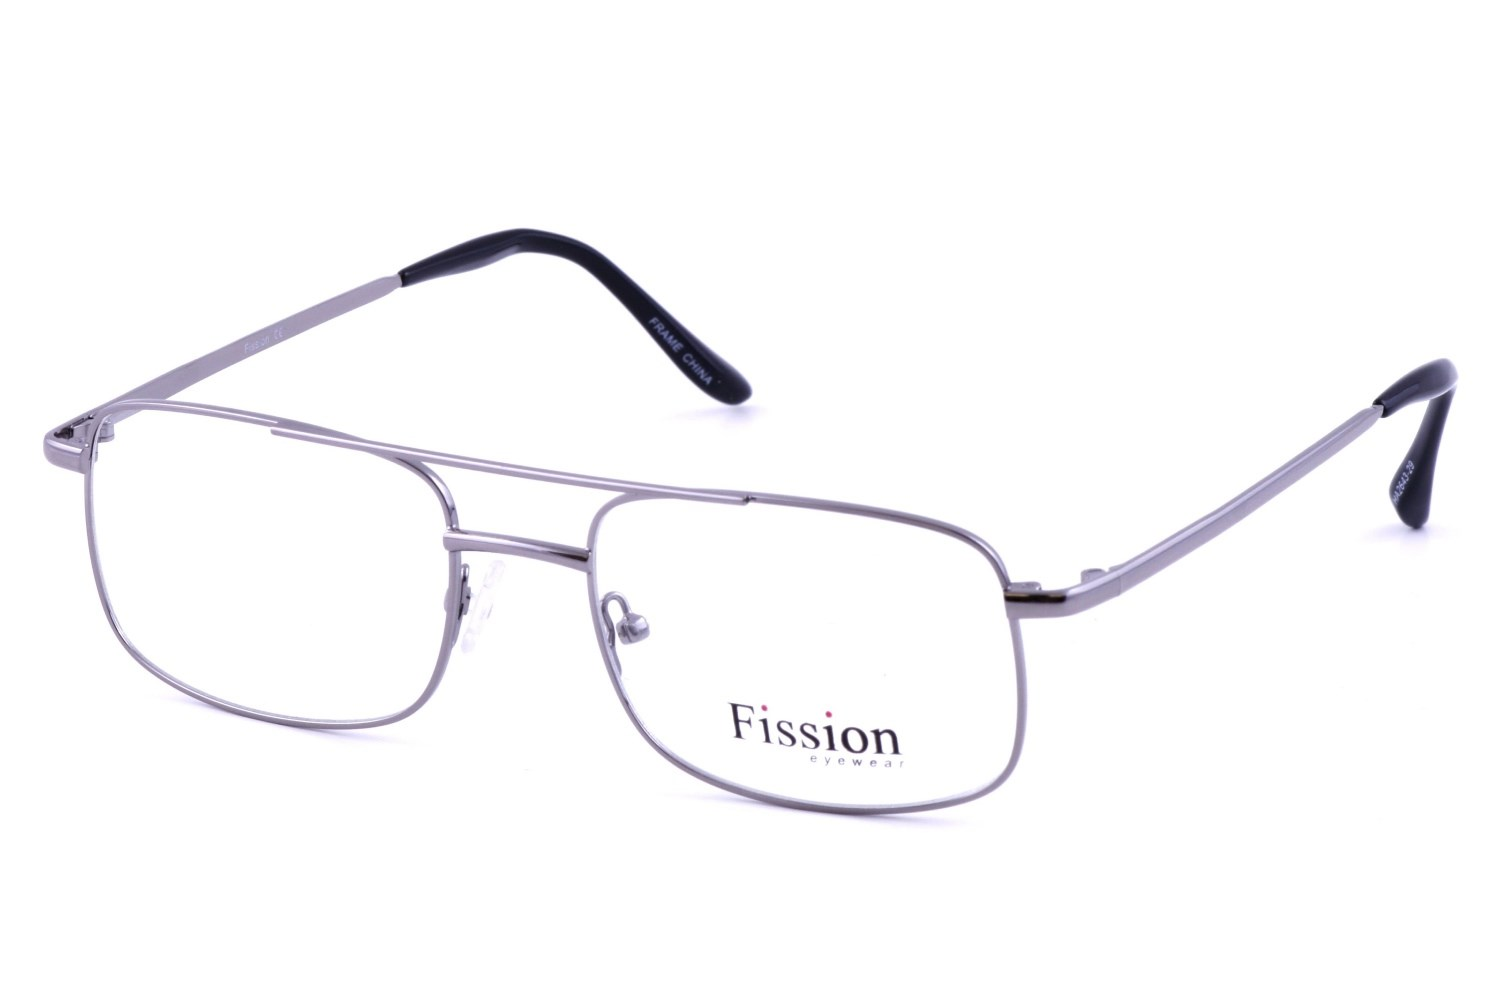 Fission 020 Prescription Eyeglasses Frames